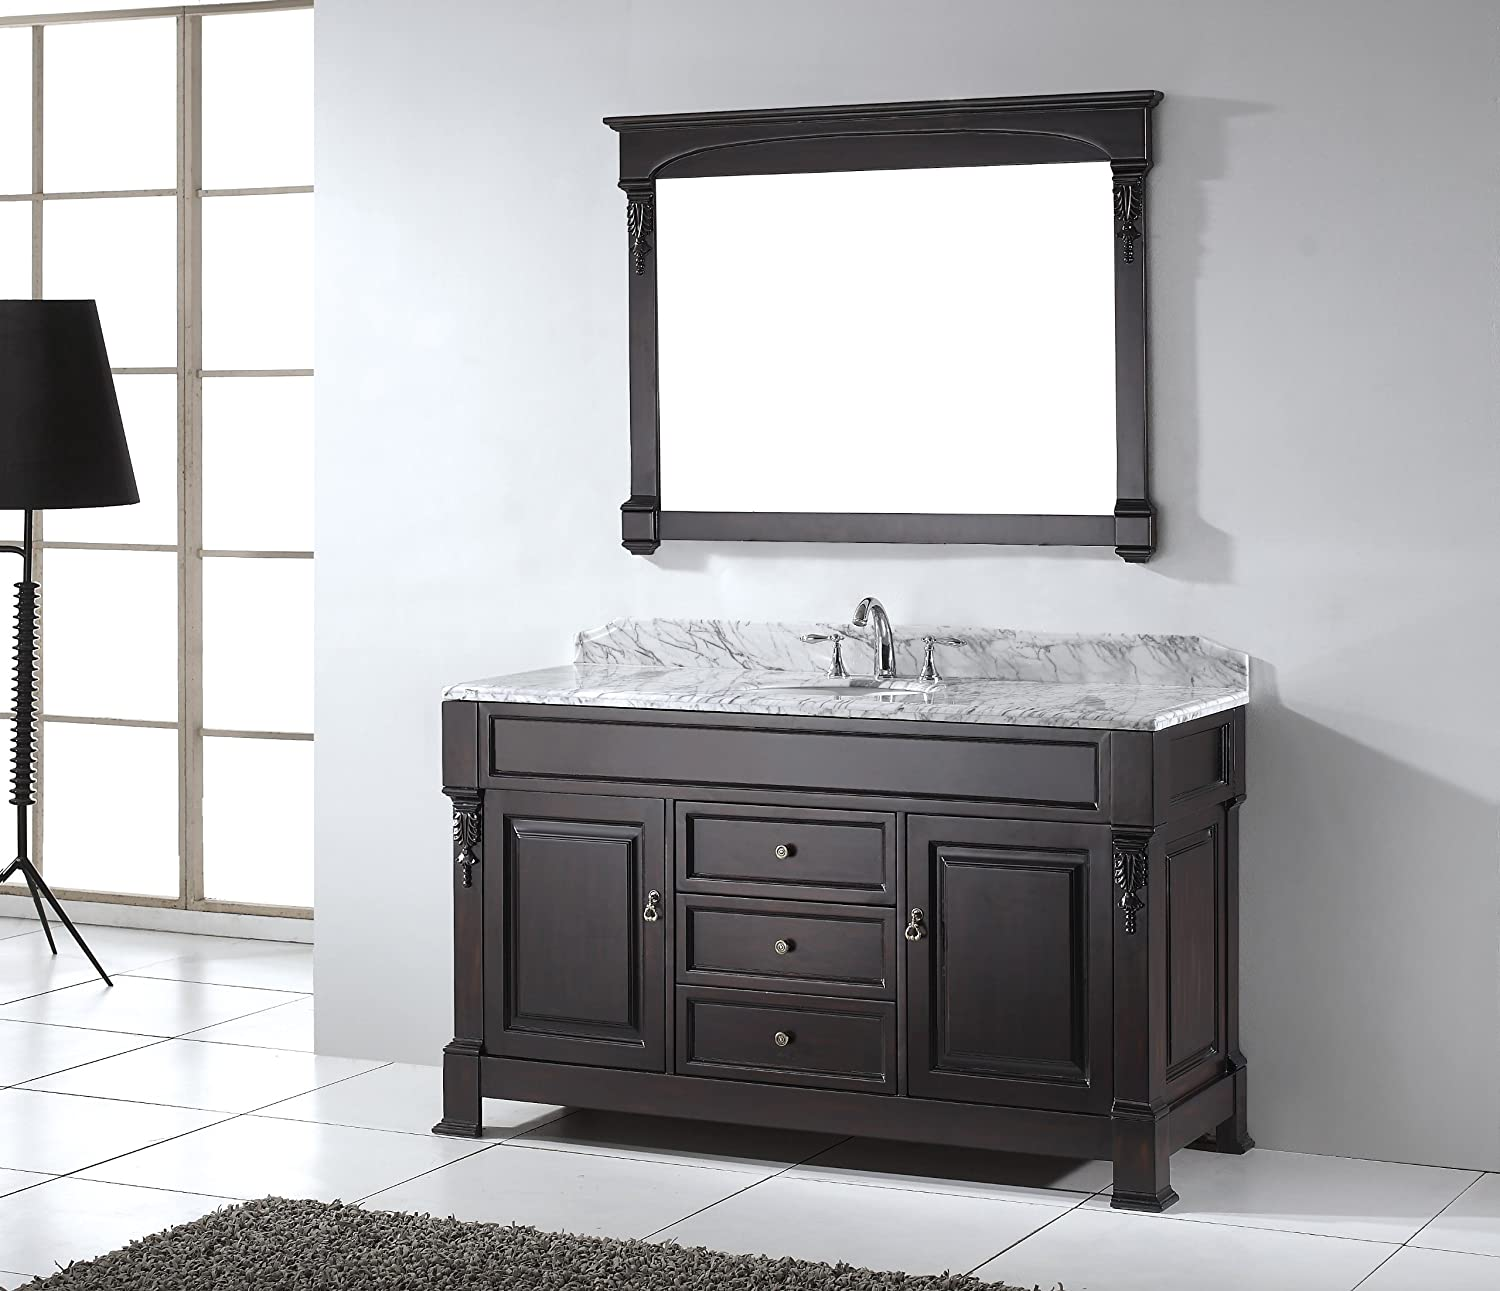 virtu usa huntshire 60inch single sink bathroom vanity with mirror and ceramic basin dark walnut finish amazoncom - 60 Bathroom Vanity